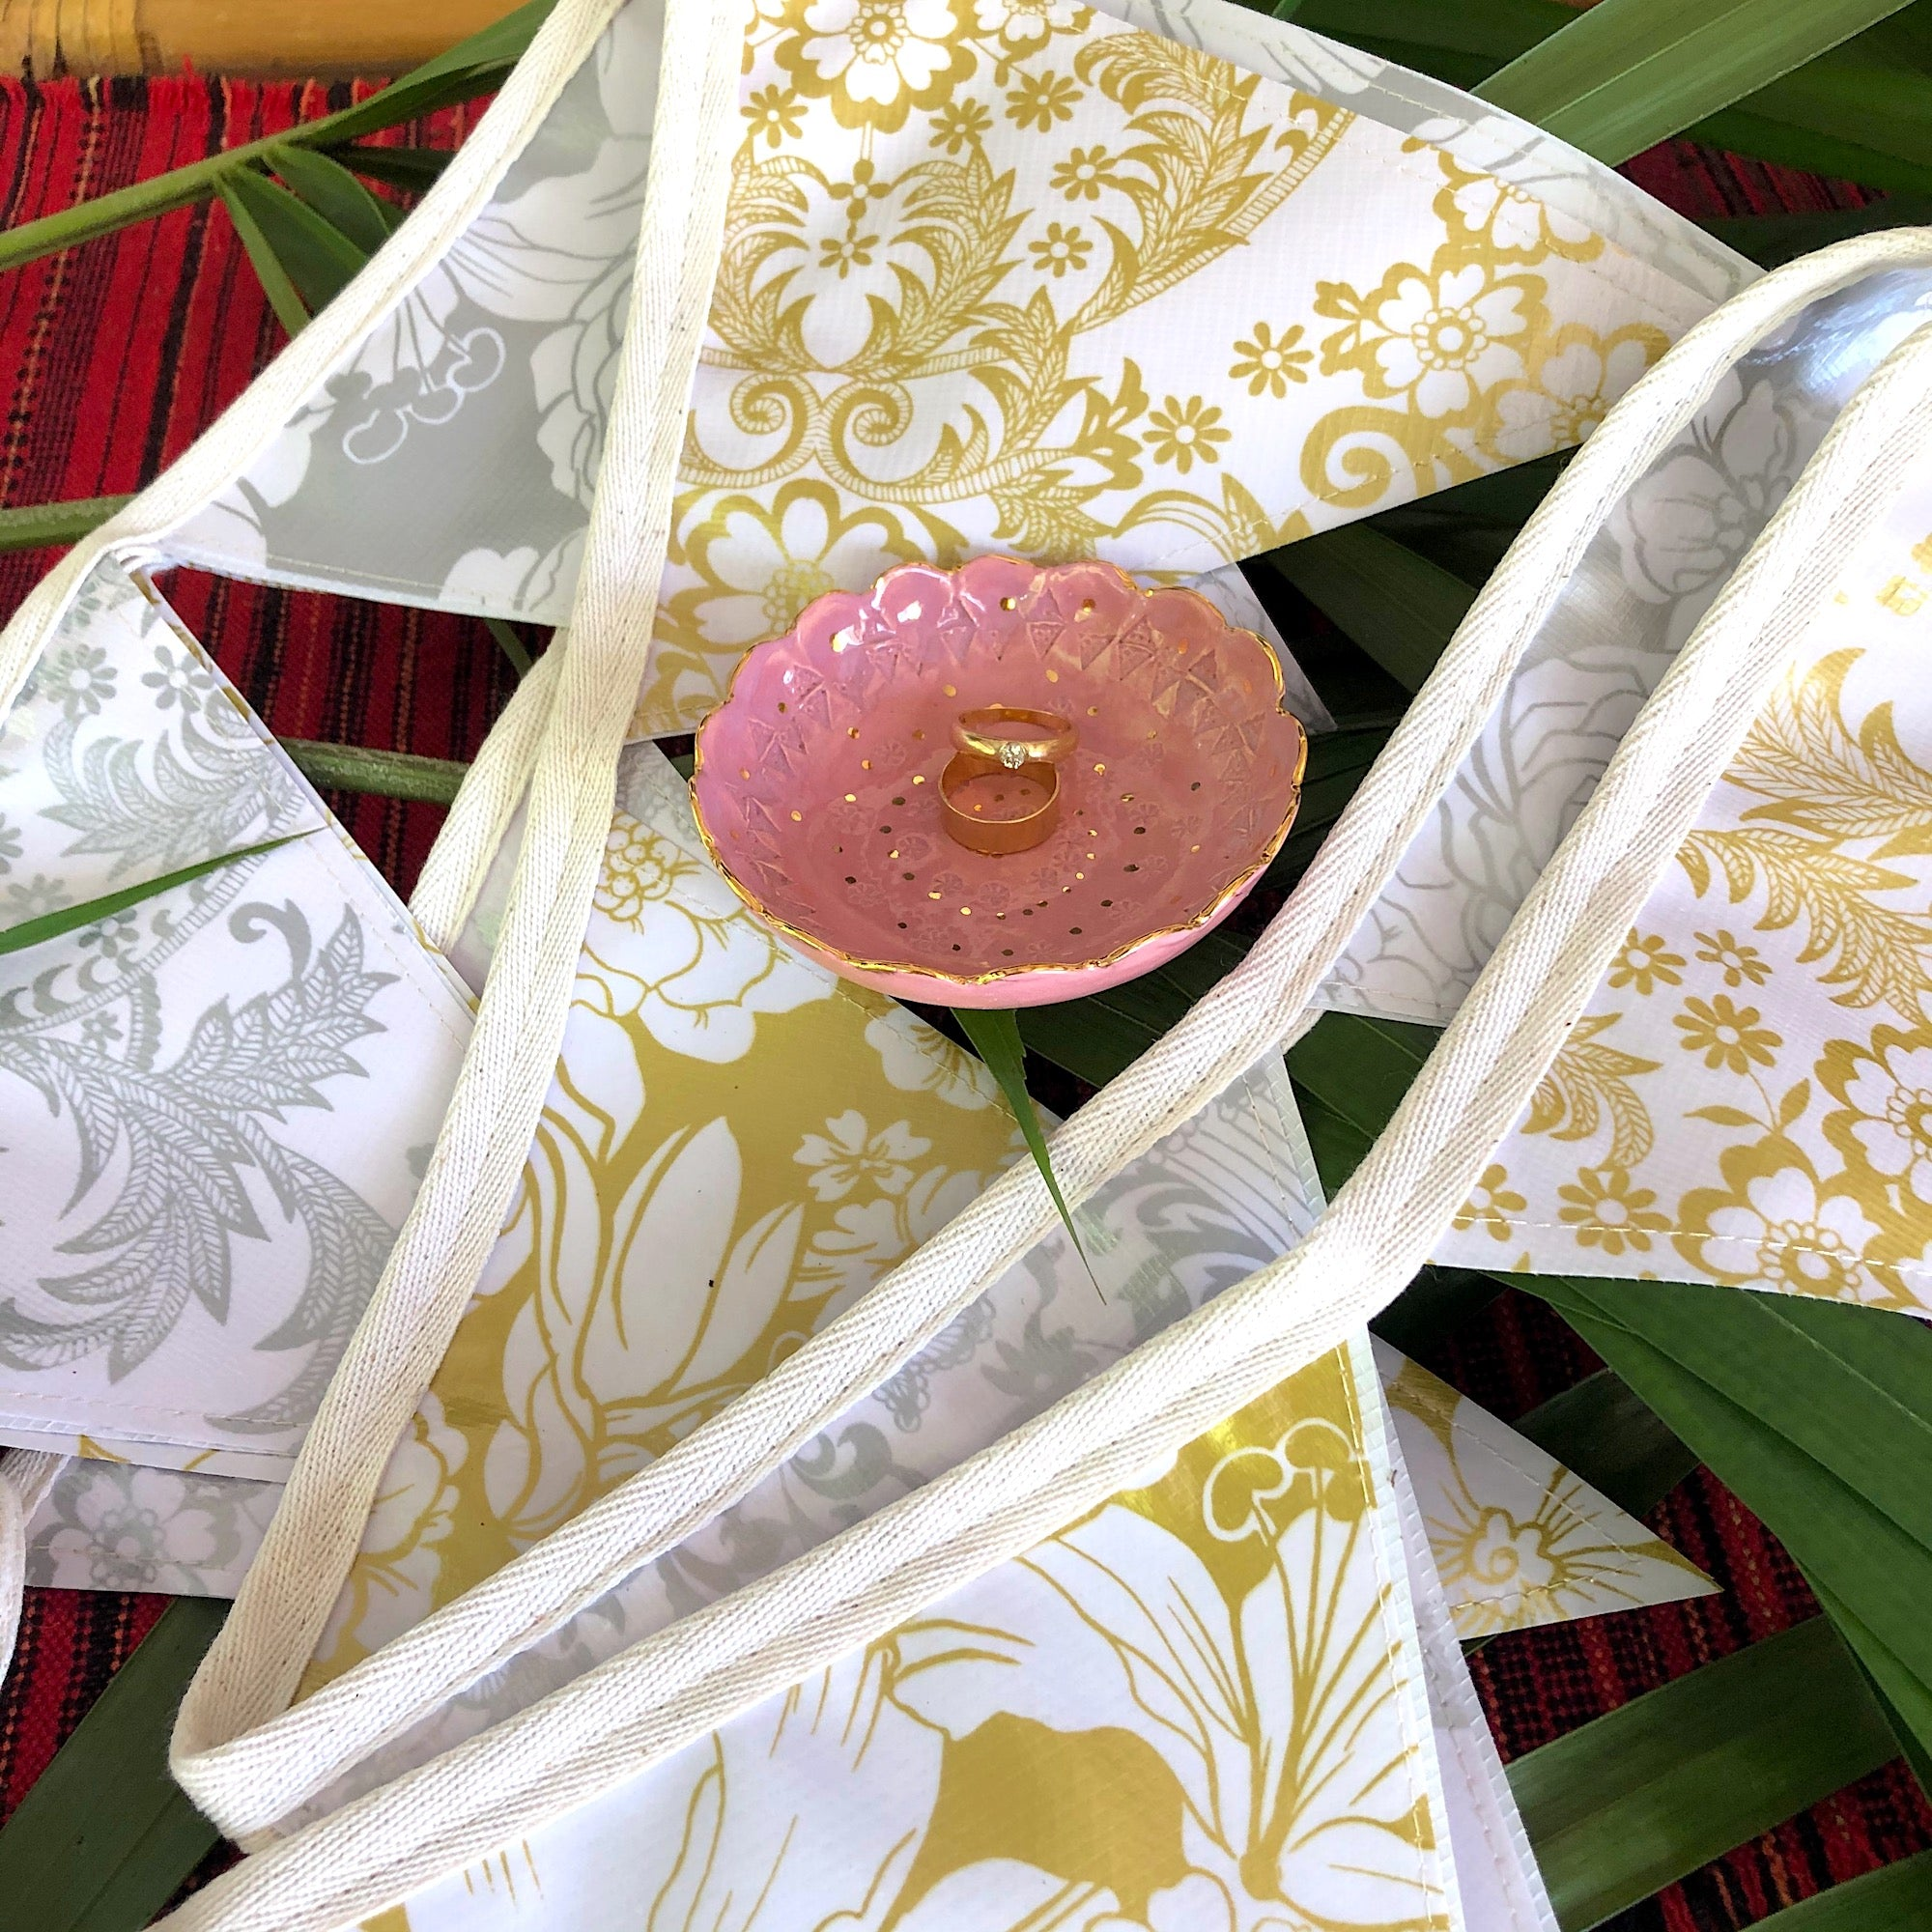 3 mt Silver and Gold Wedding Bunting - Outdoor Party Garland - Pallu Design